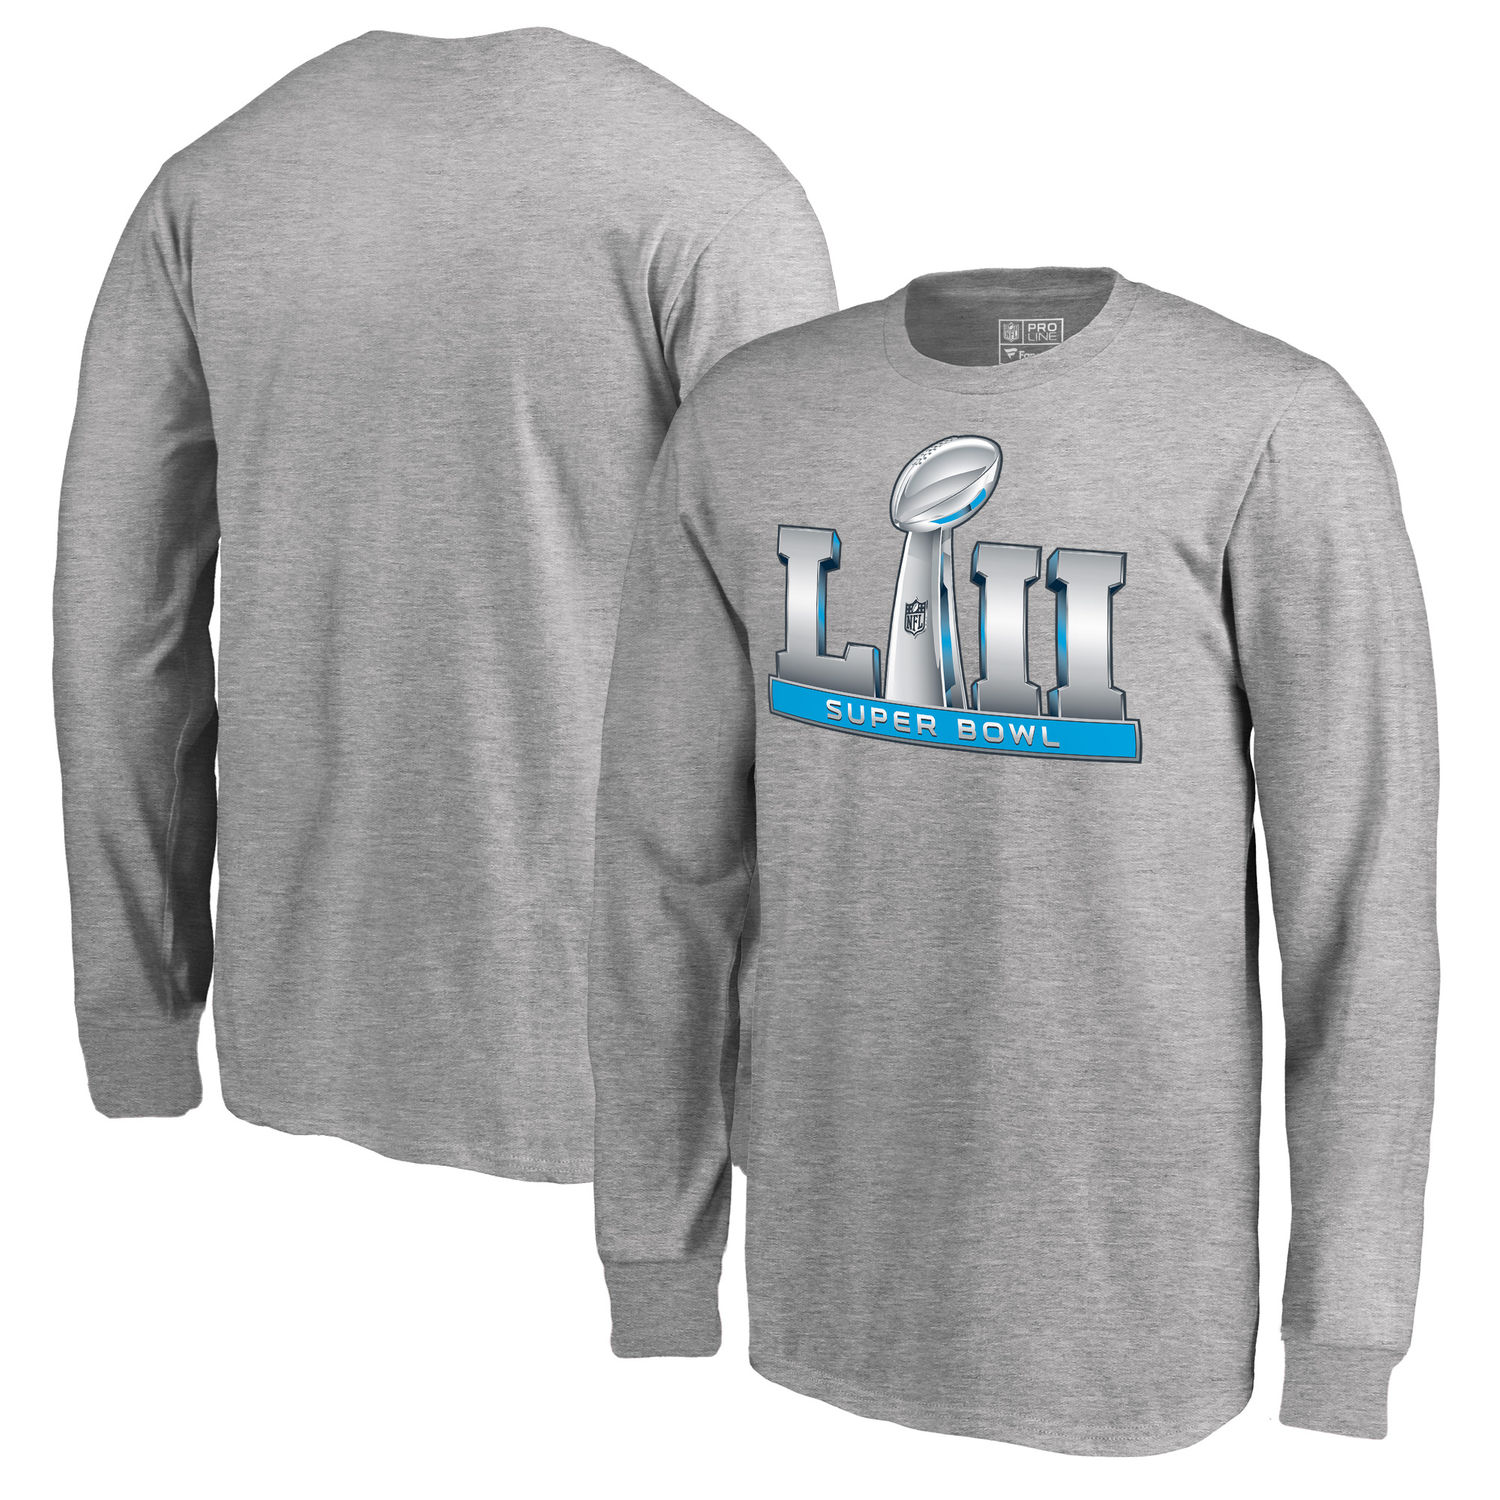 Youth NFL Pro Line by Fanatics Branded Heather Gray Super Bowl LII Event Long Sleeve T Shirt